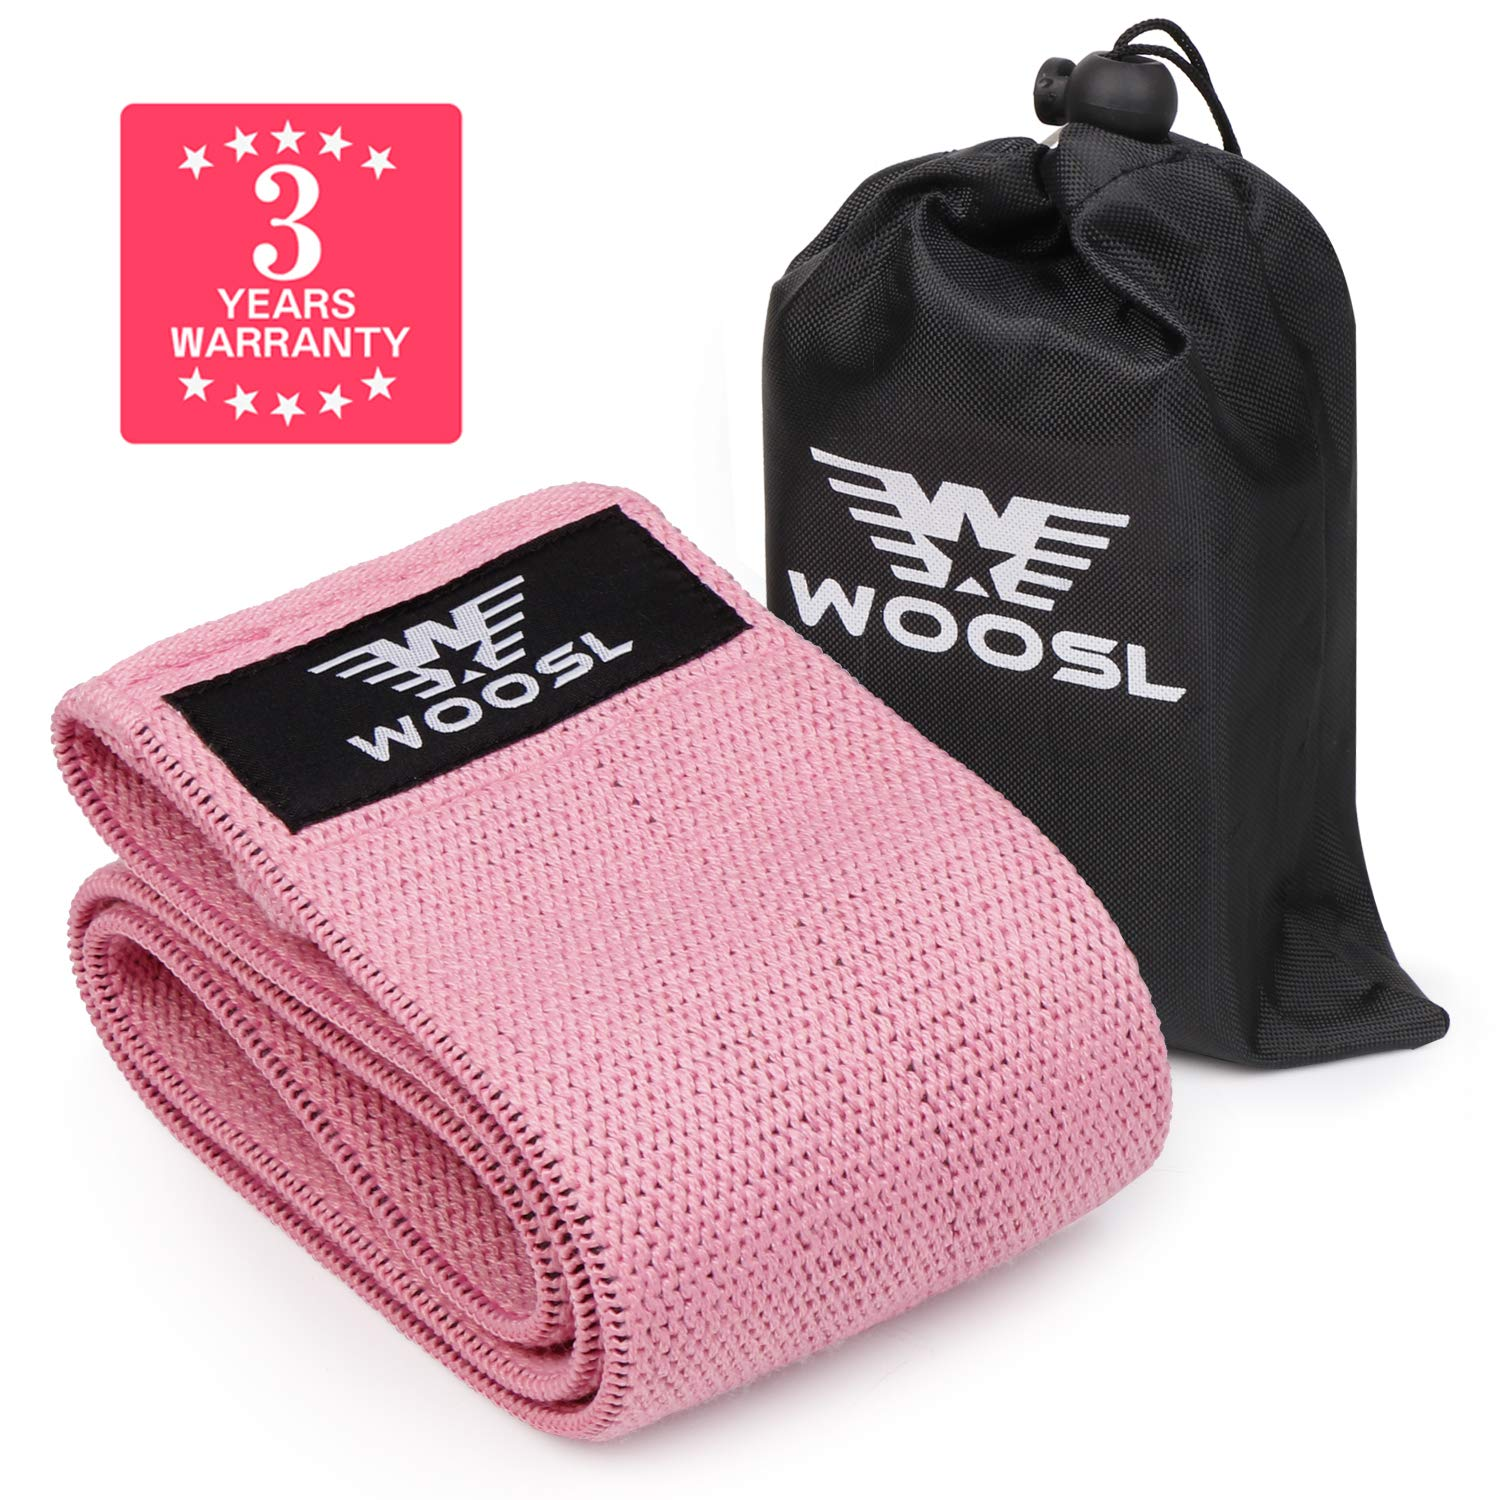 WOOSL [Upgrade 2019] Resistance Exercise Bands for Legs and Butt,Hip Bands Wide Booty Bands Workout Bands Sports Fitness Bands Stretch Resistance Loops Band Anti Slip Elastic(1 PCS)